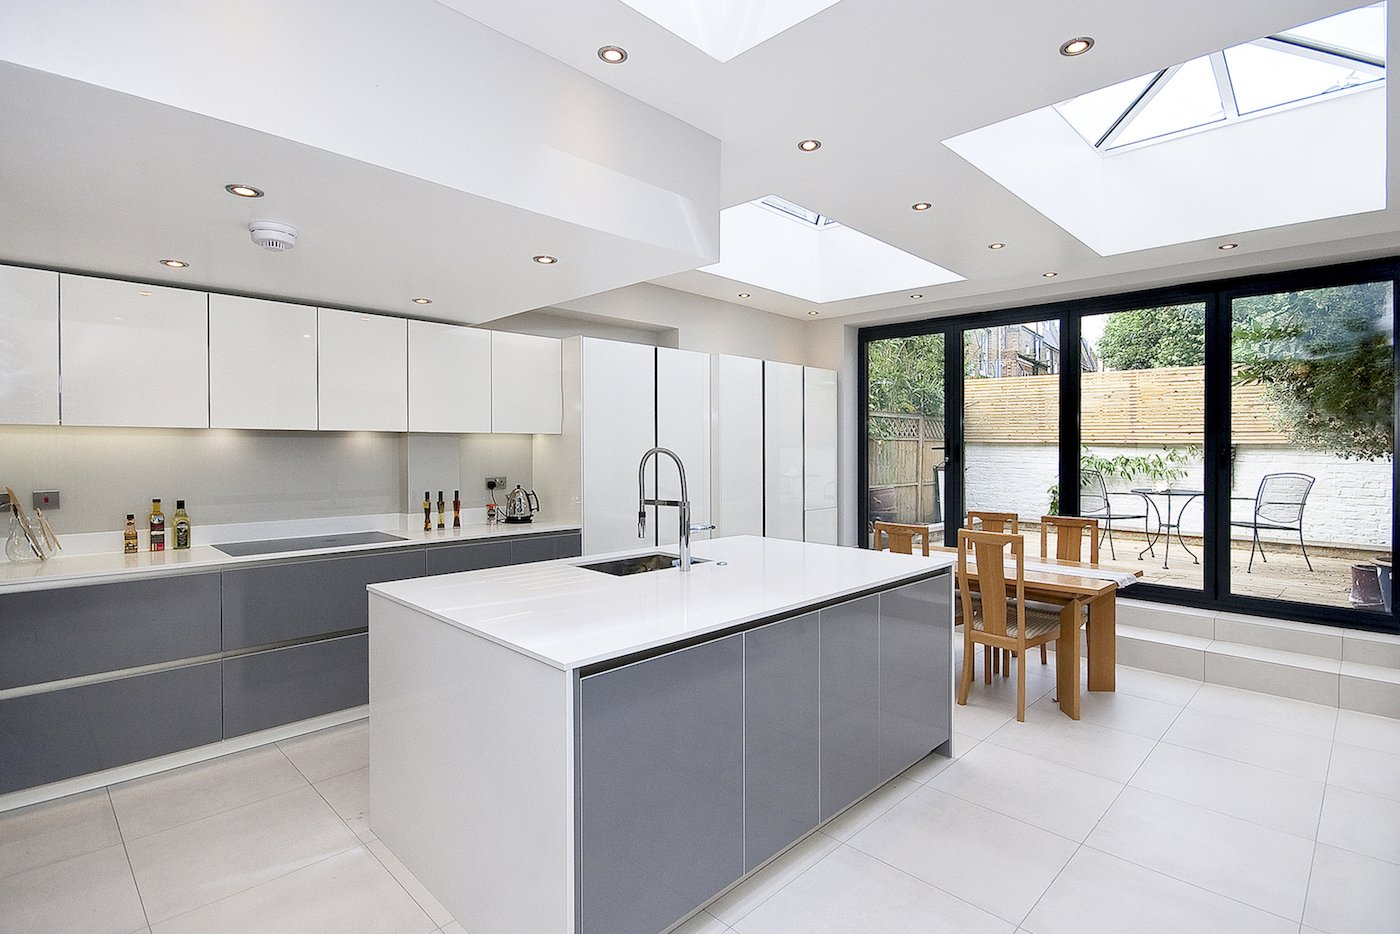 Architect designed Putney Wandsworth SW6 kitchen house extension Finishes and materials Contemporary extensions in London | Home ideas | GOA Studio